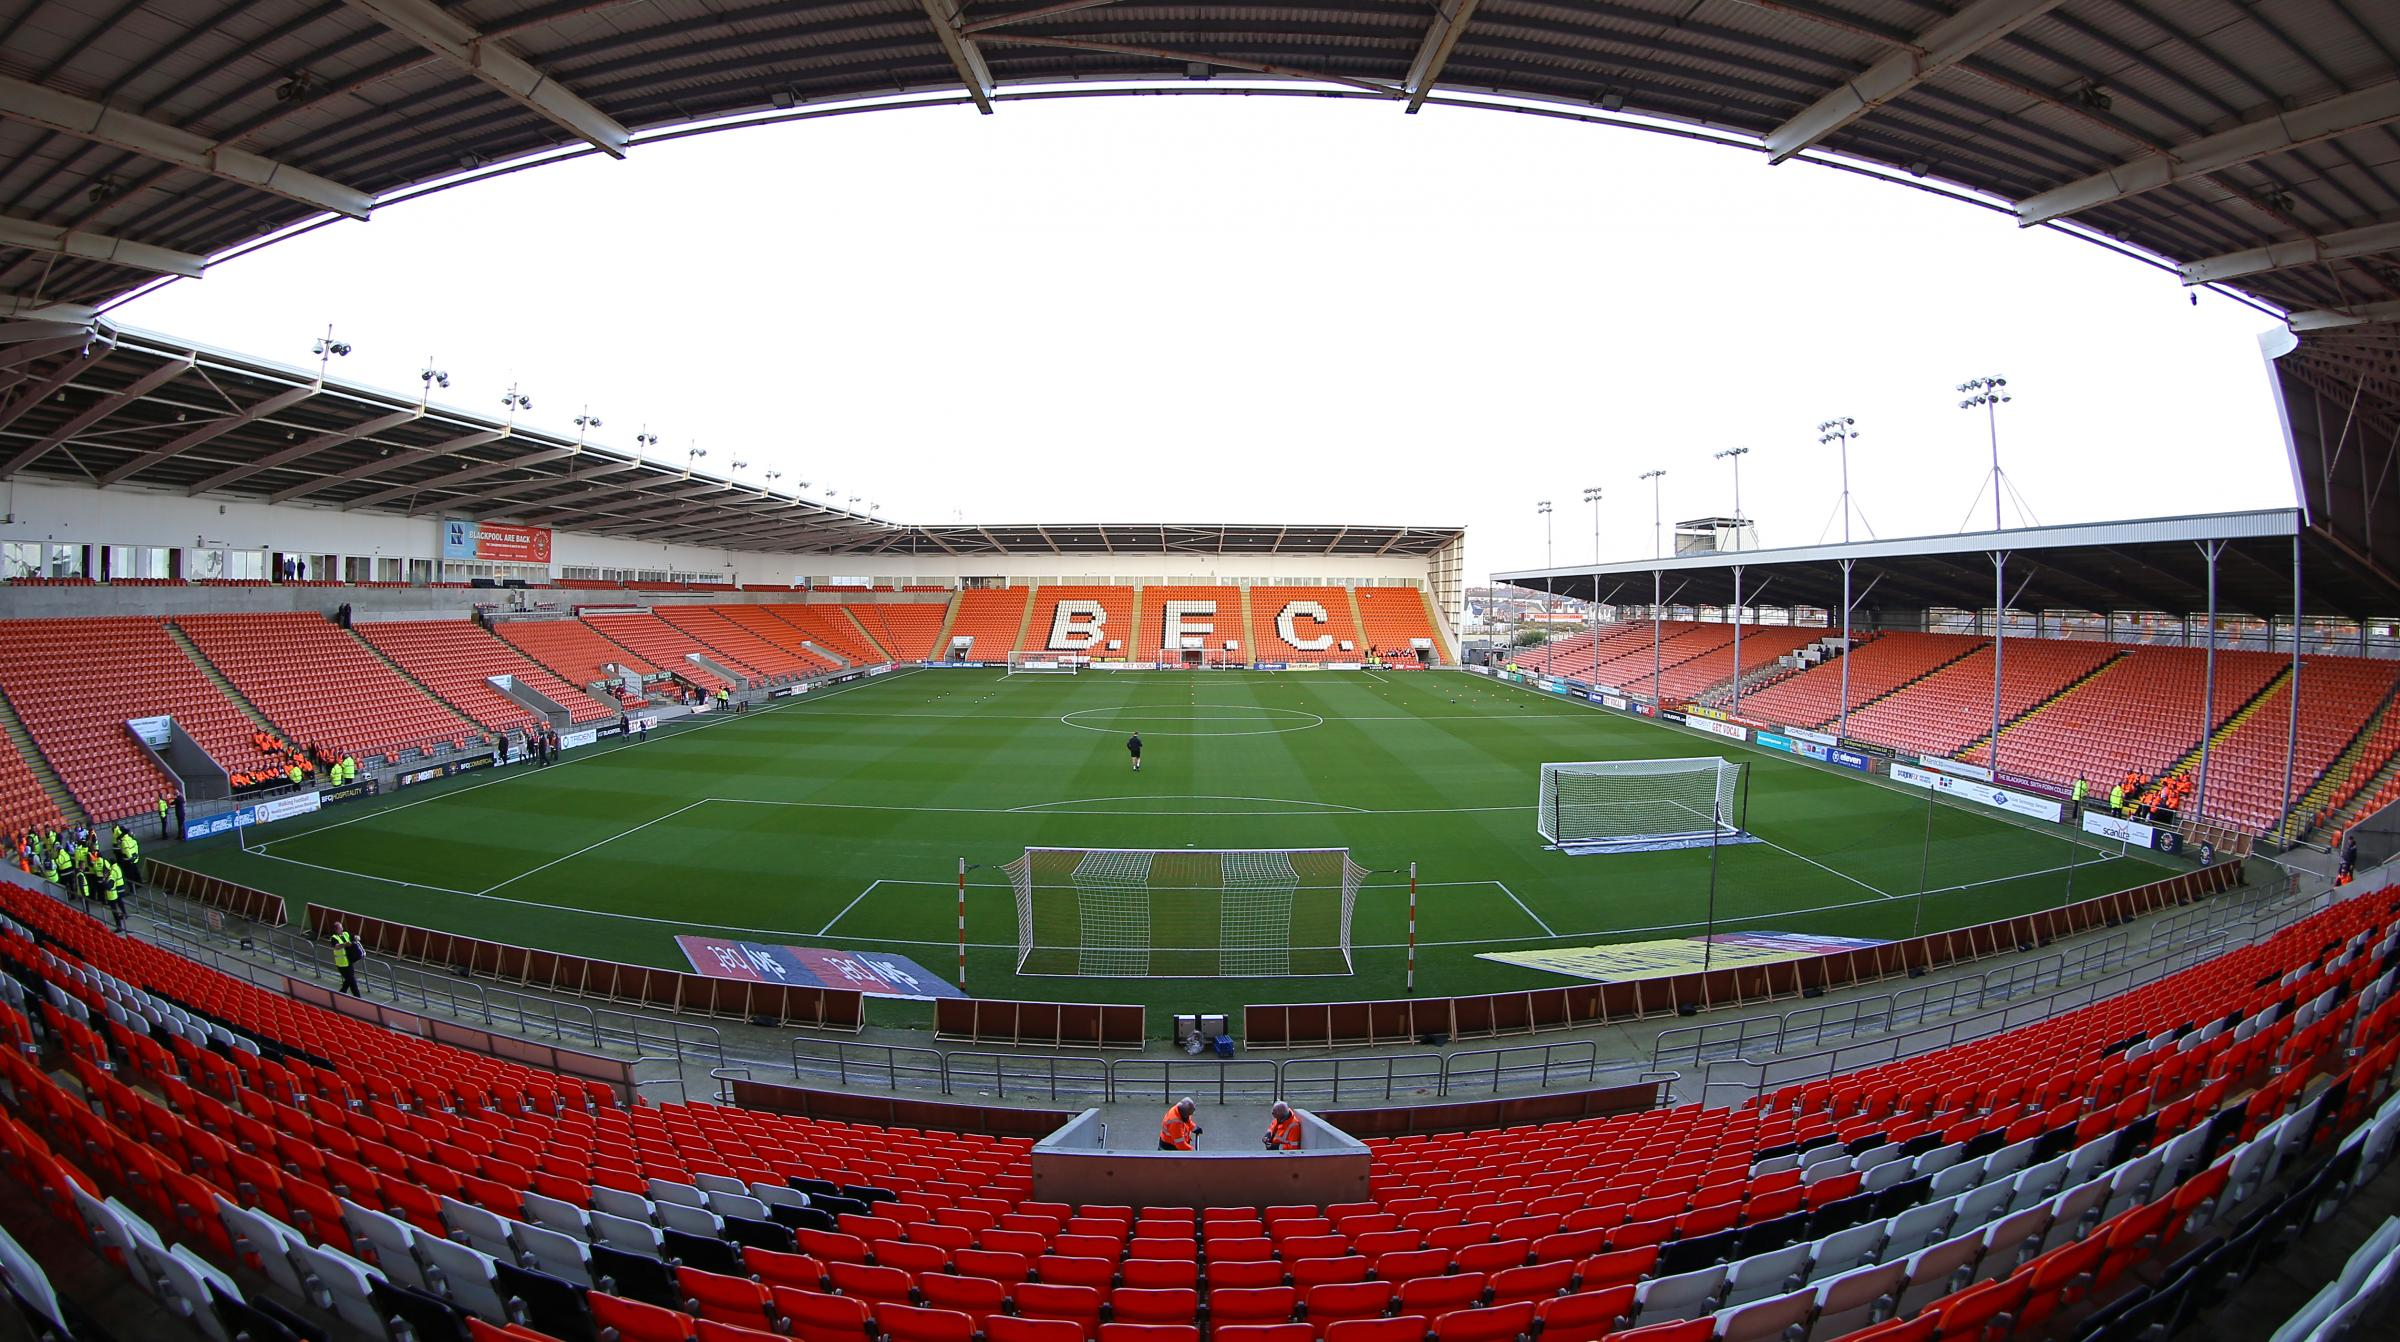 Bolton's backlog builds as Blackpool progress in FA Cup